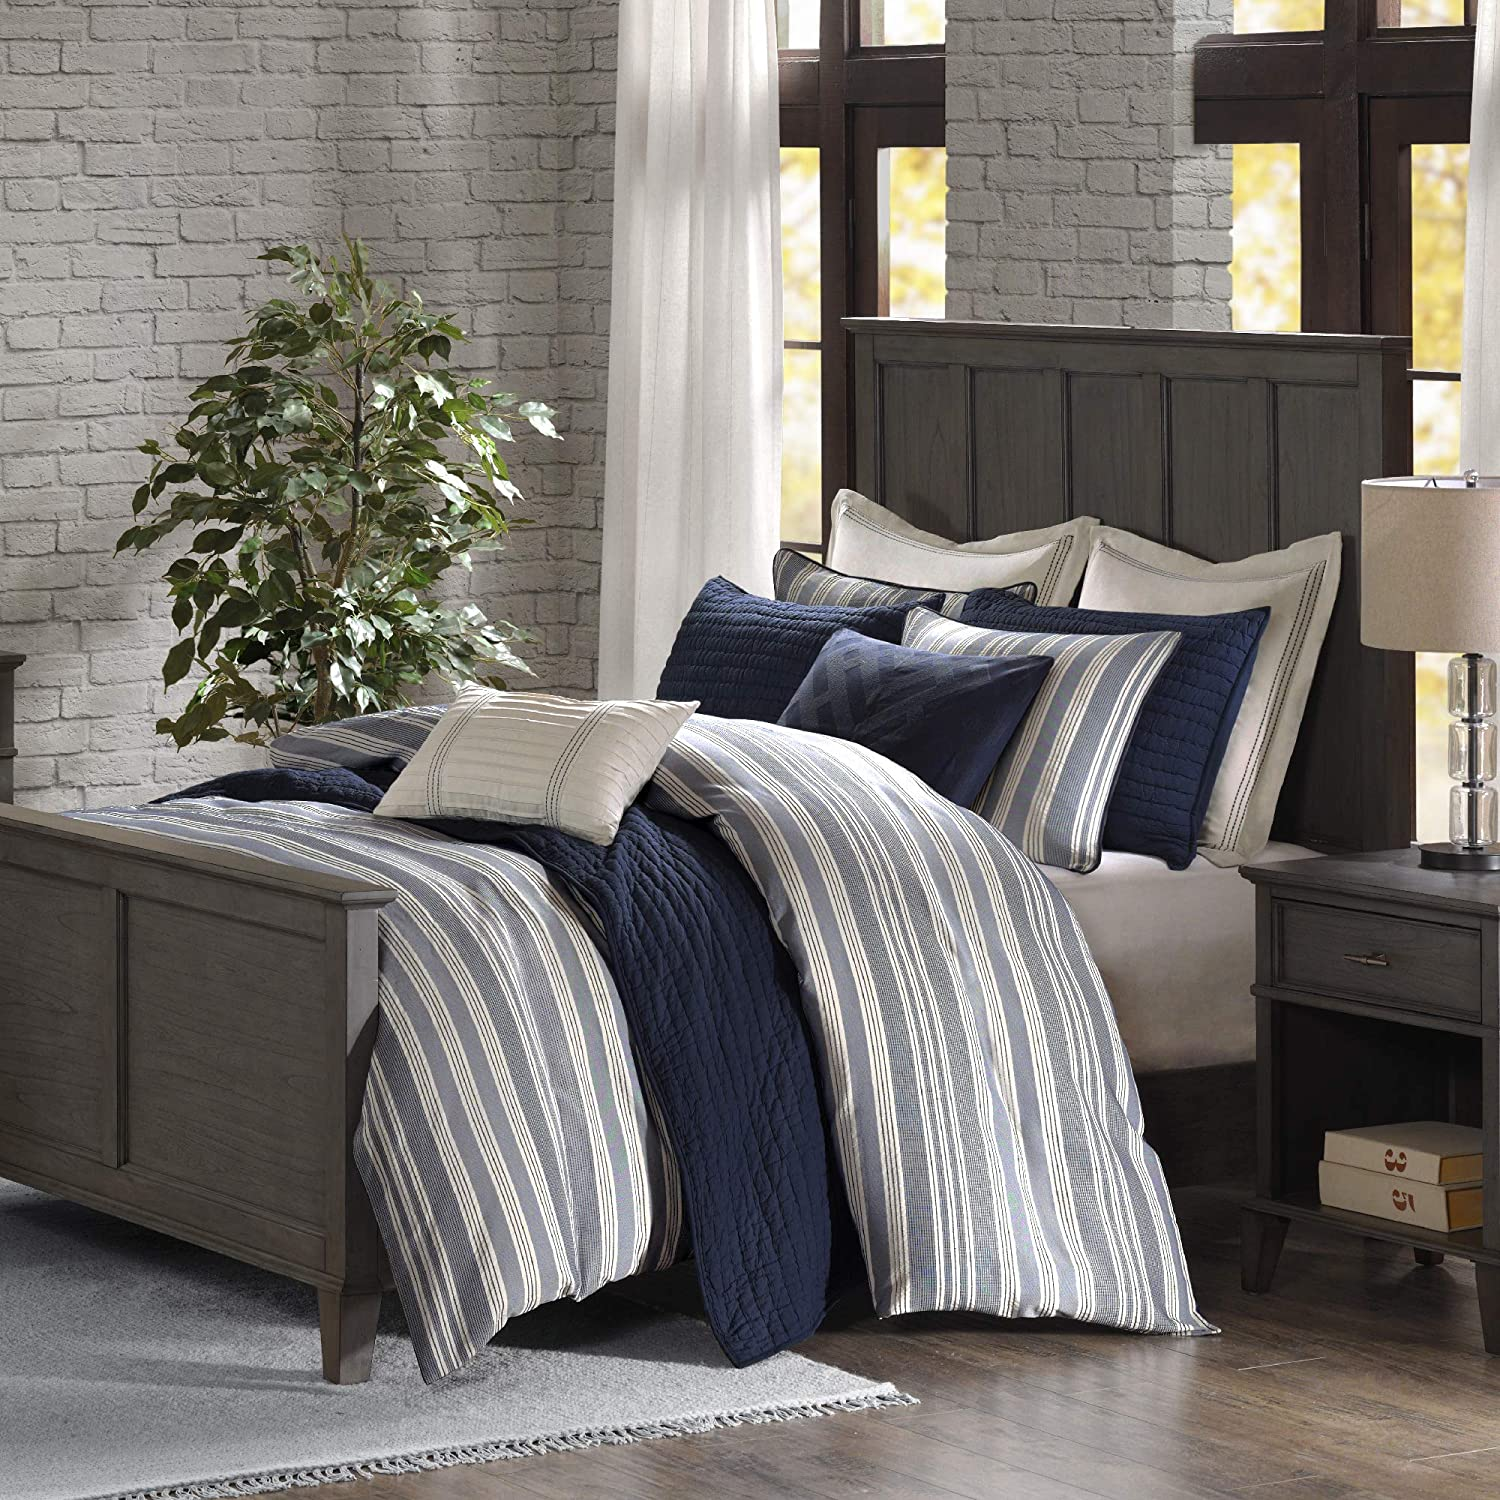 """MADISON PARK SIGNATURE Cozy Comforter Set - Rustic Lodge Style Combo Filled Insert, Removable Duvet Cover. Matching Shams, Decorative Pillows, Queen(92""""x96""""), Farmhouse Cabin, Stripe Blue 8 Piece"""